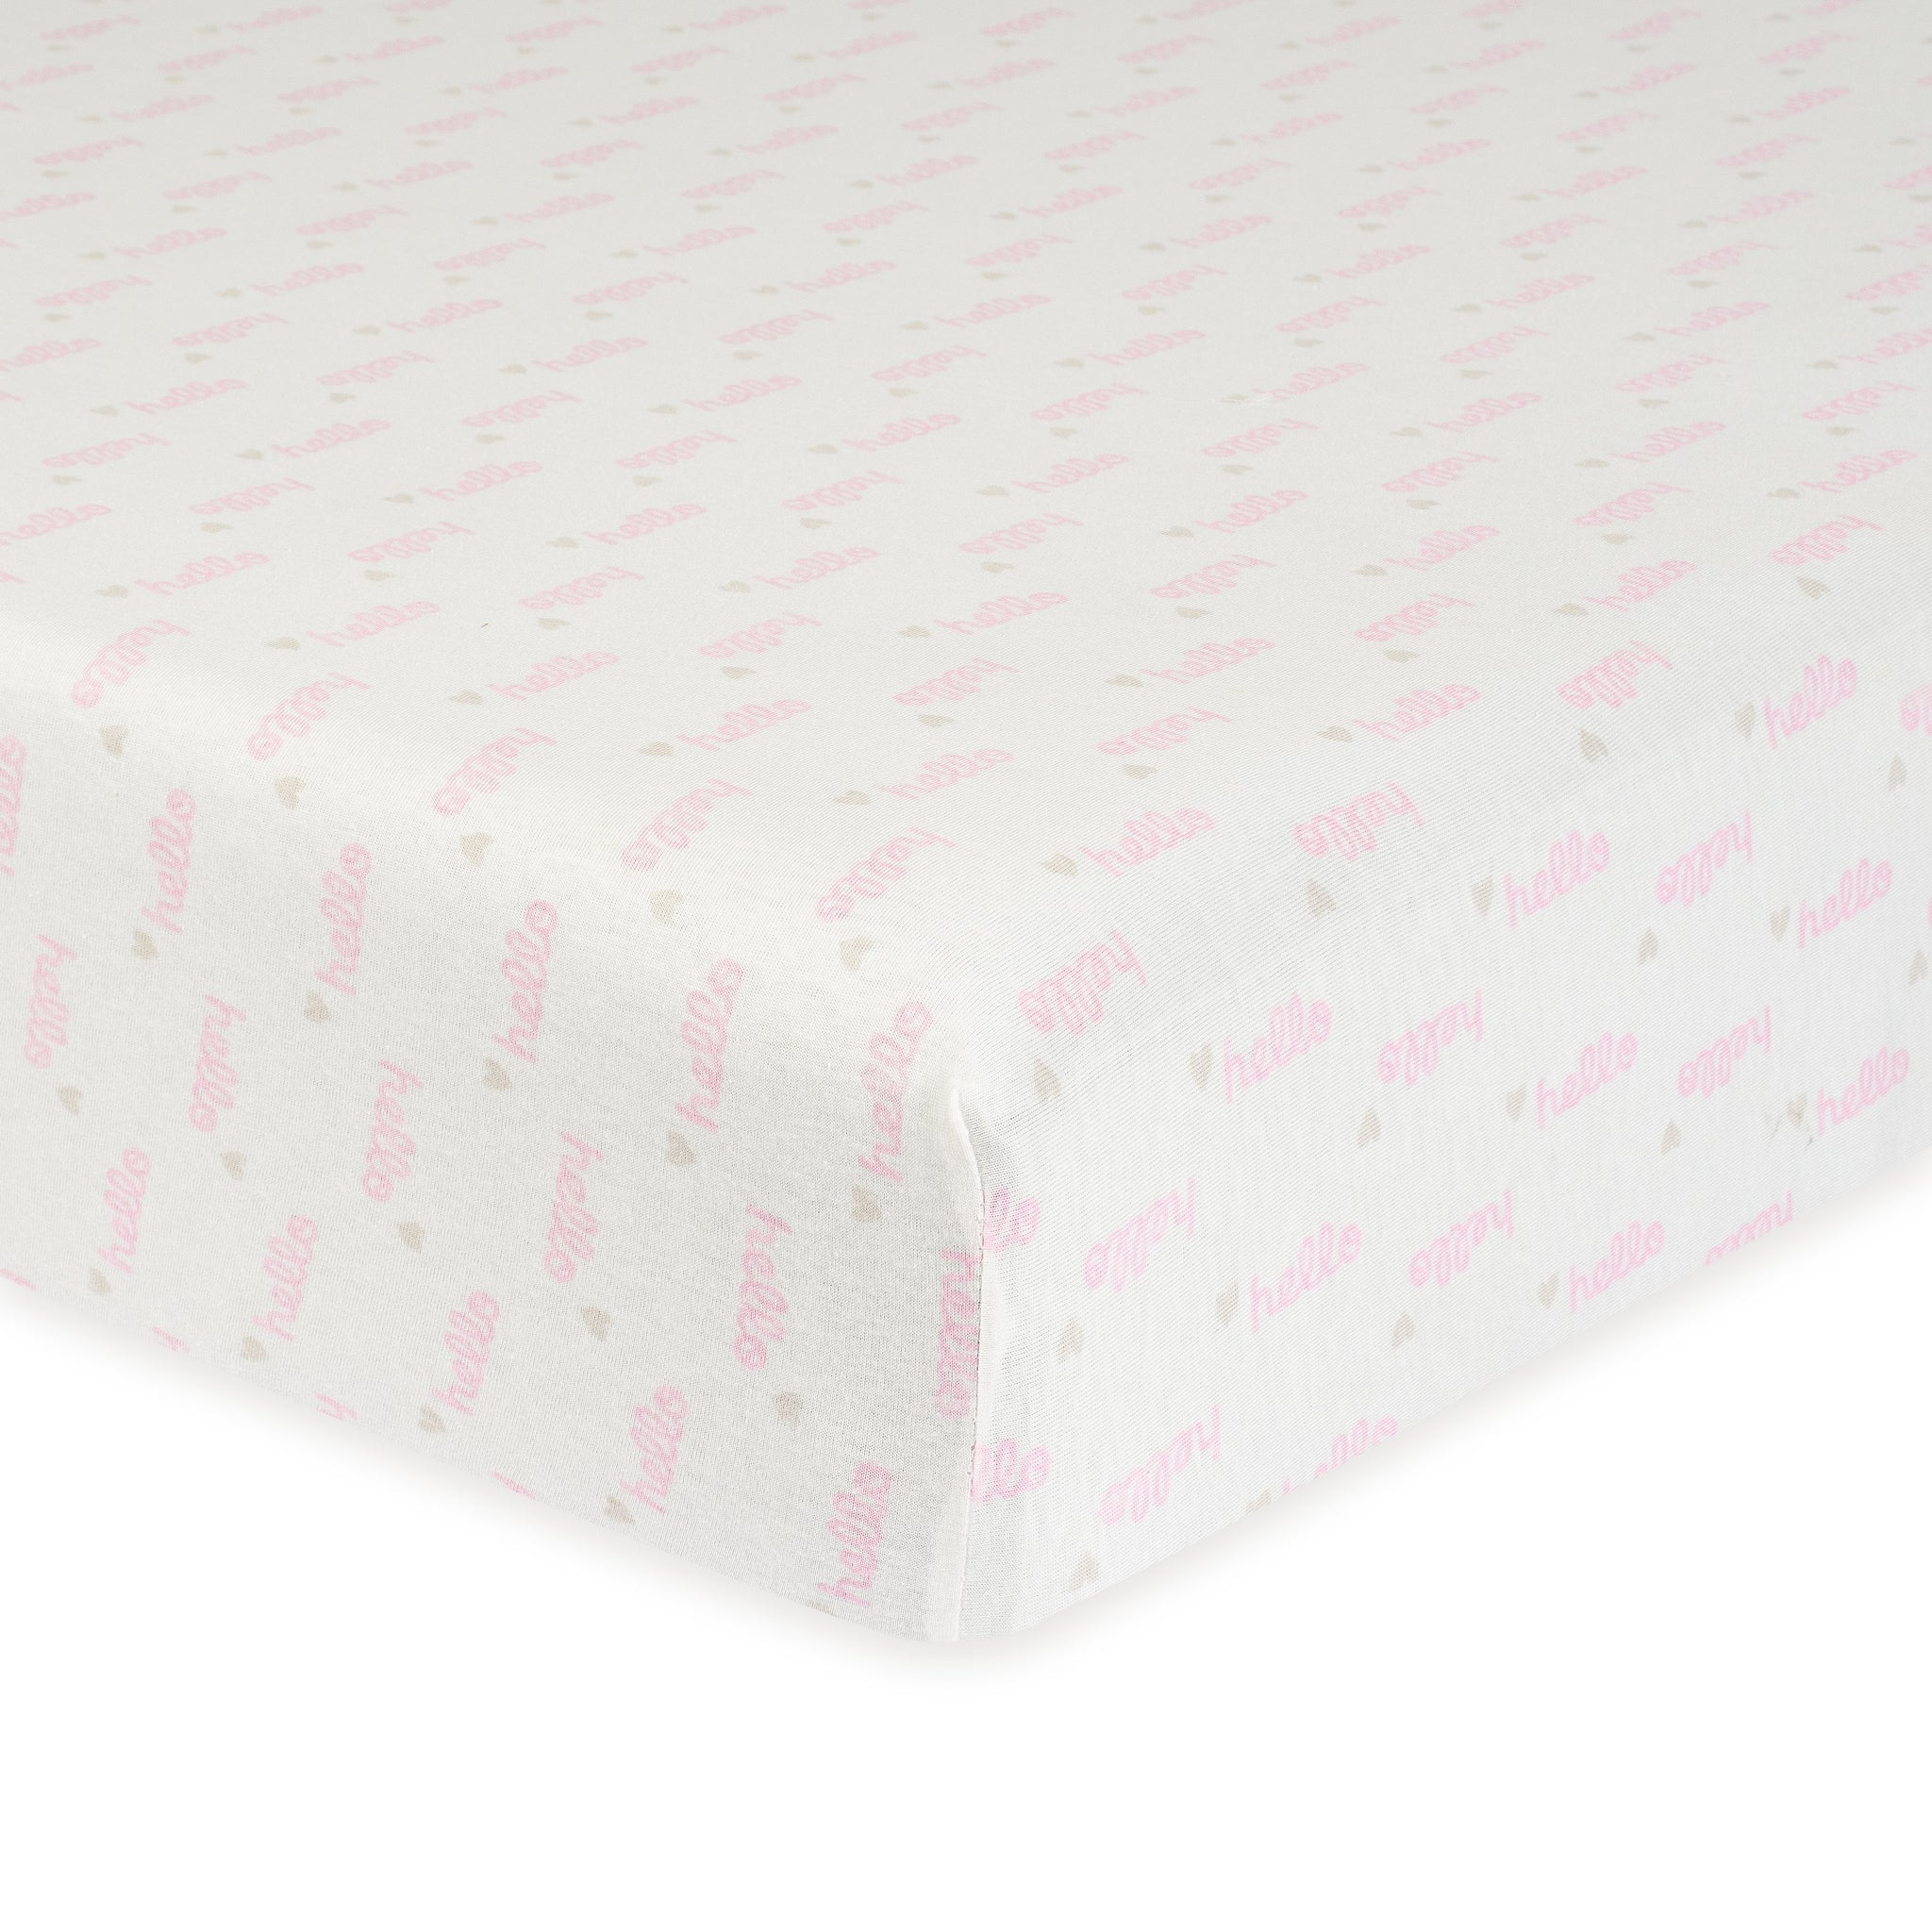 1-Pack Girls Hello Pink Organic Fitted Crib Sheet-Gerber Childrenswear Wholesale